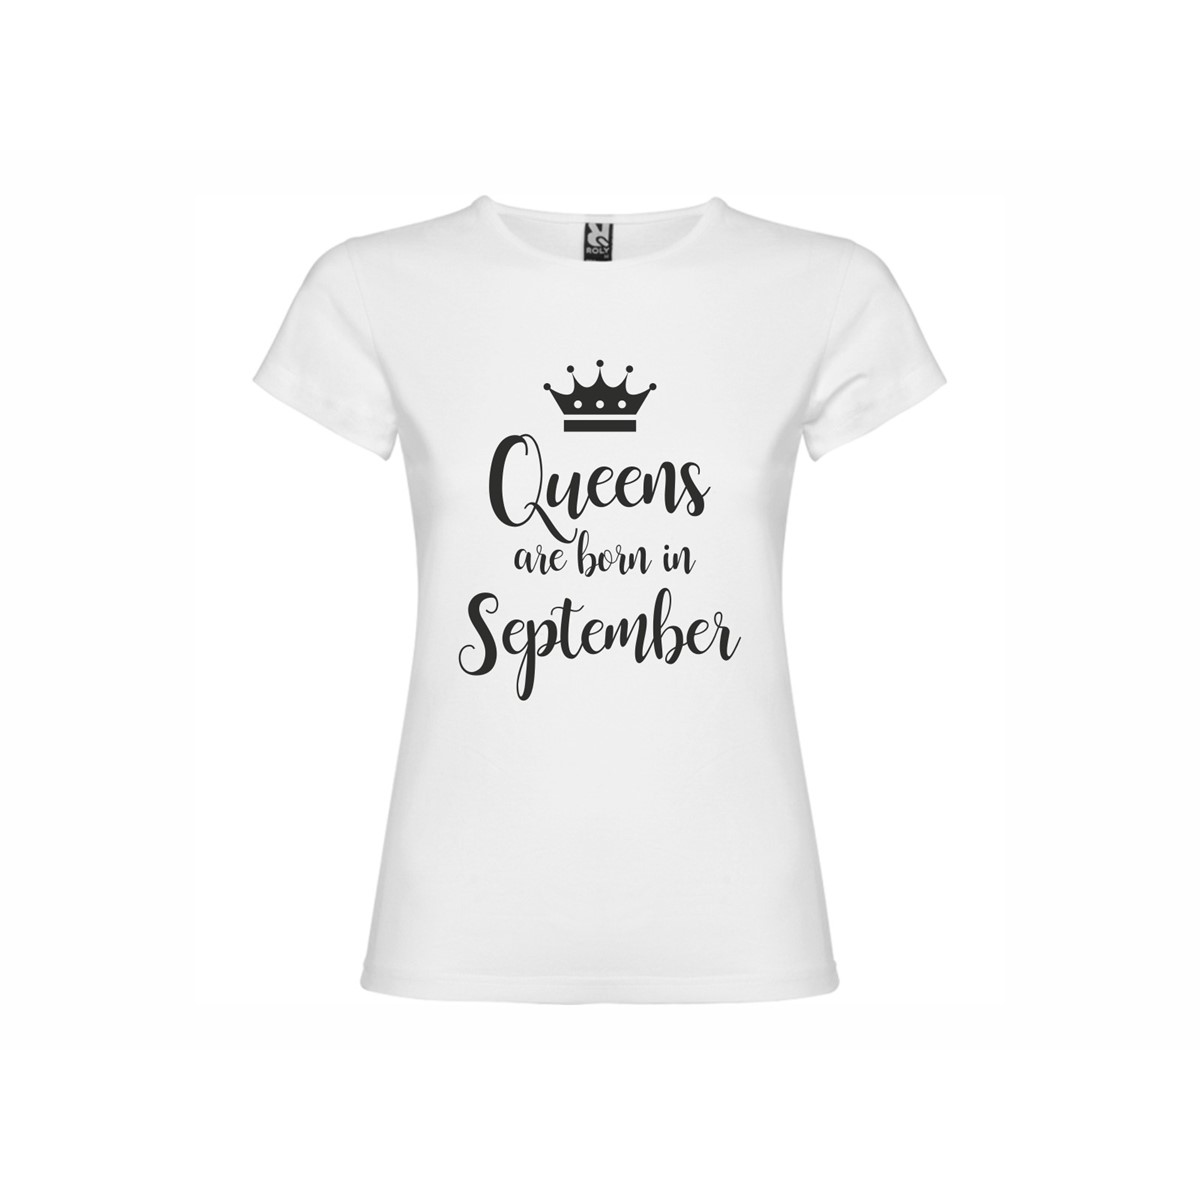 601480e7a Woman T-shirt Queens born September